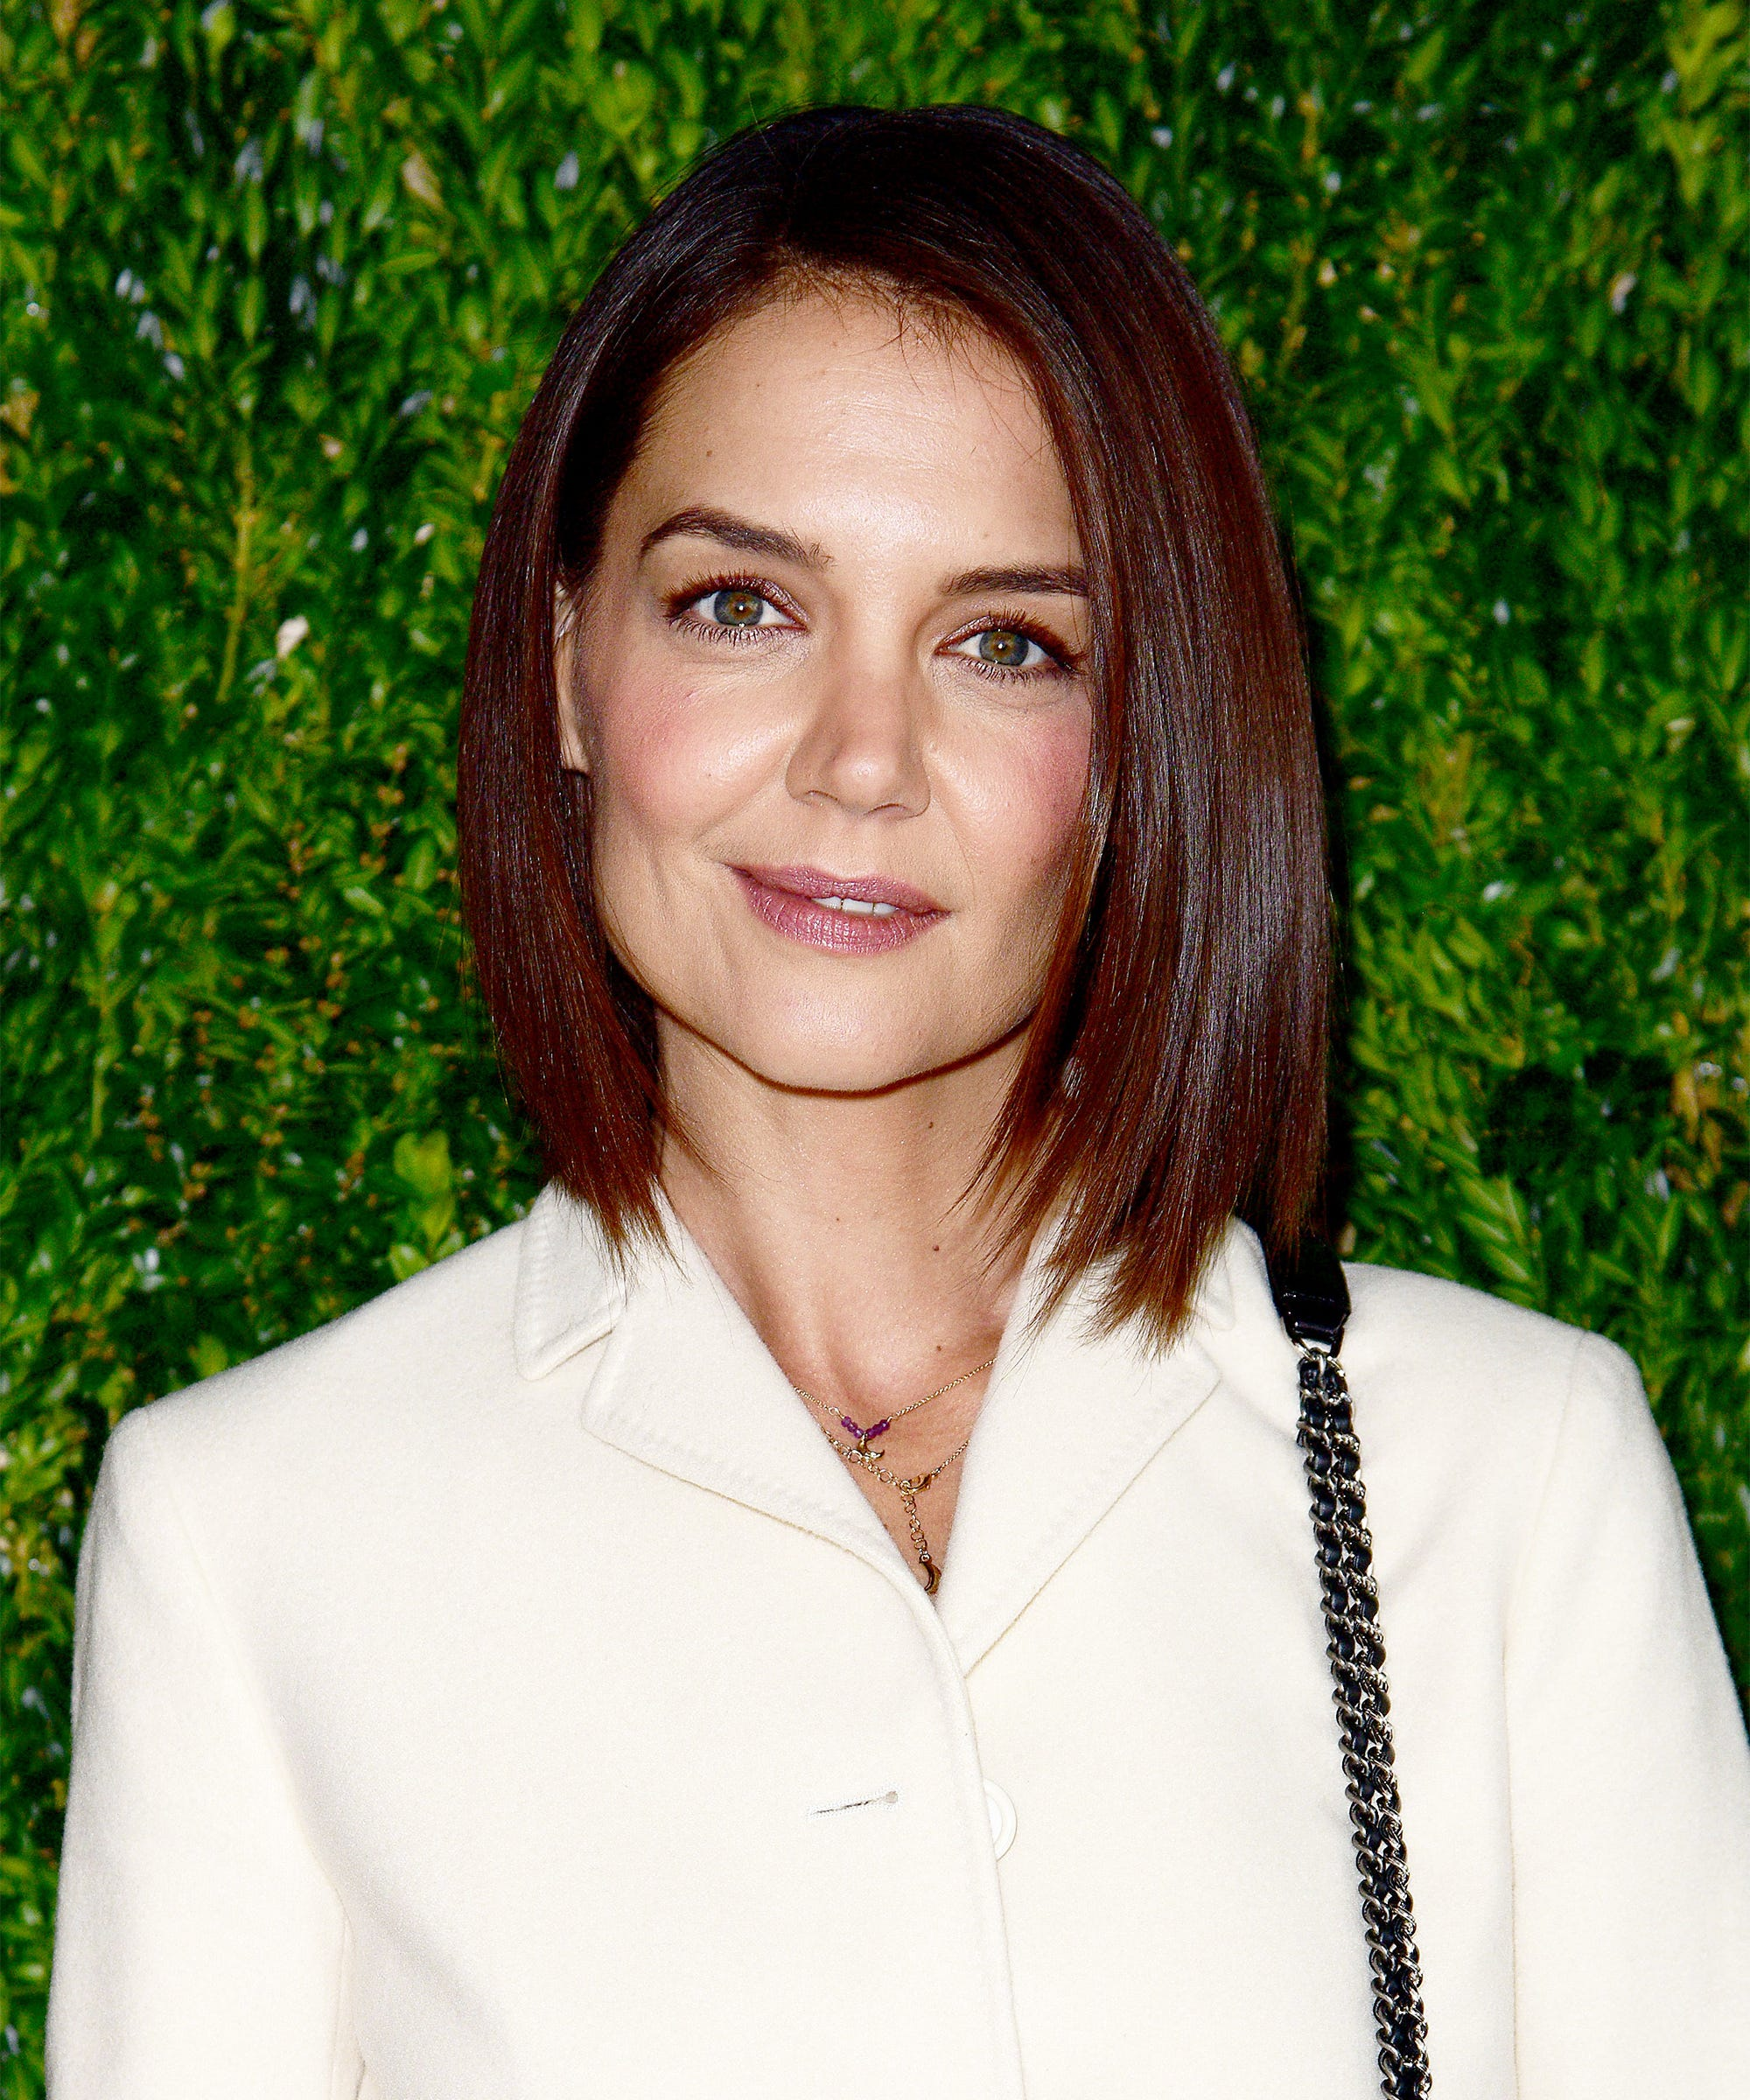 680cc896416 Katie Holmes  Hairstylist Breaks Down Her Relaxed Bob